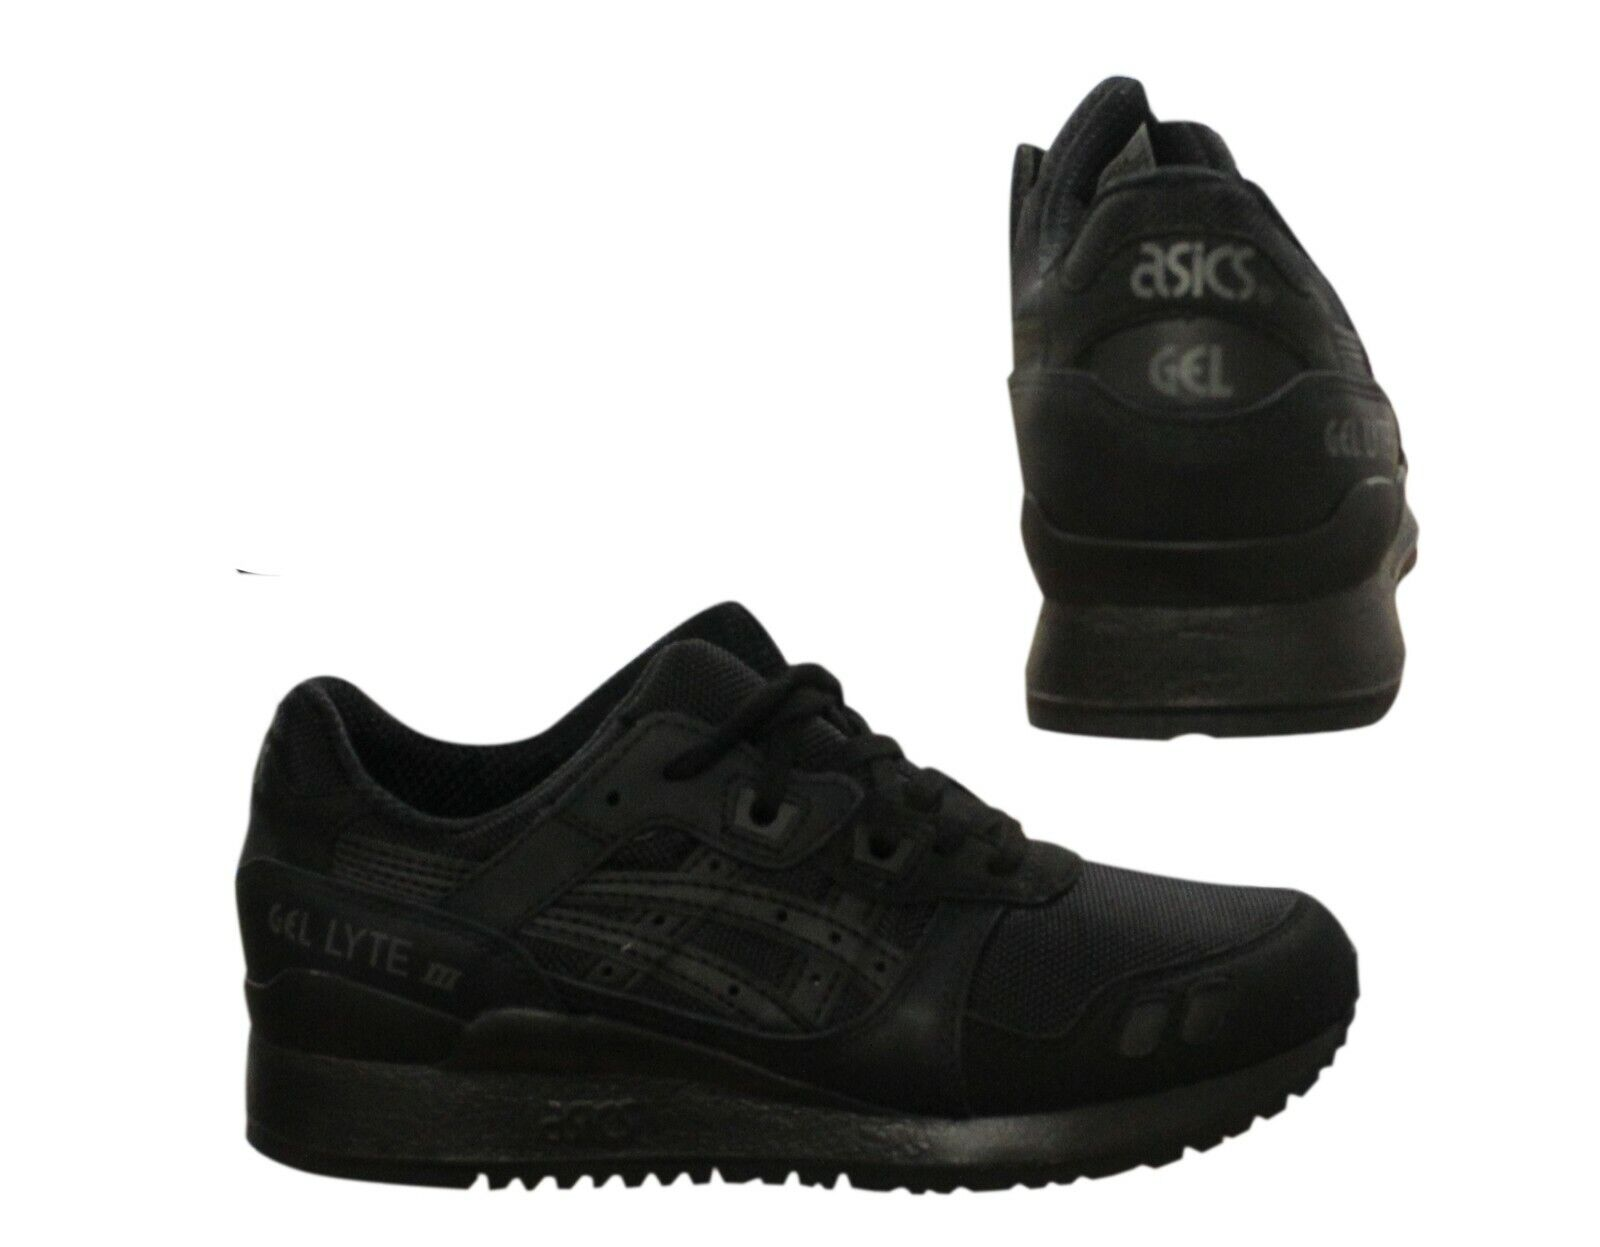 Asics Gel Lyte III Mens Trainers Lace Up Running Shoes Black HN6G4 9090 B35B